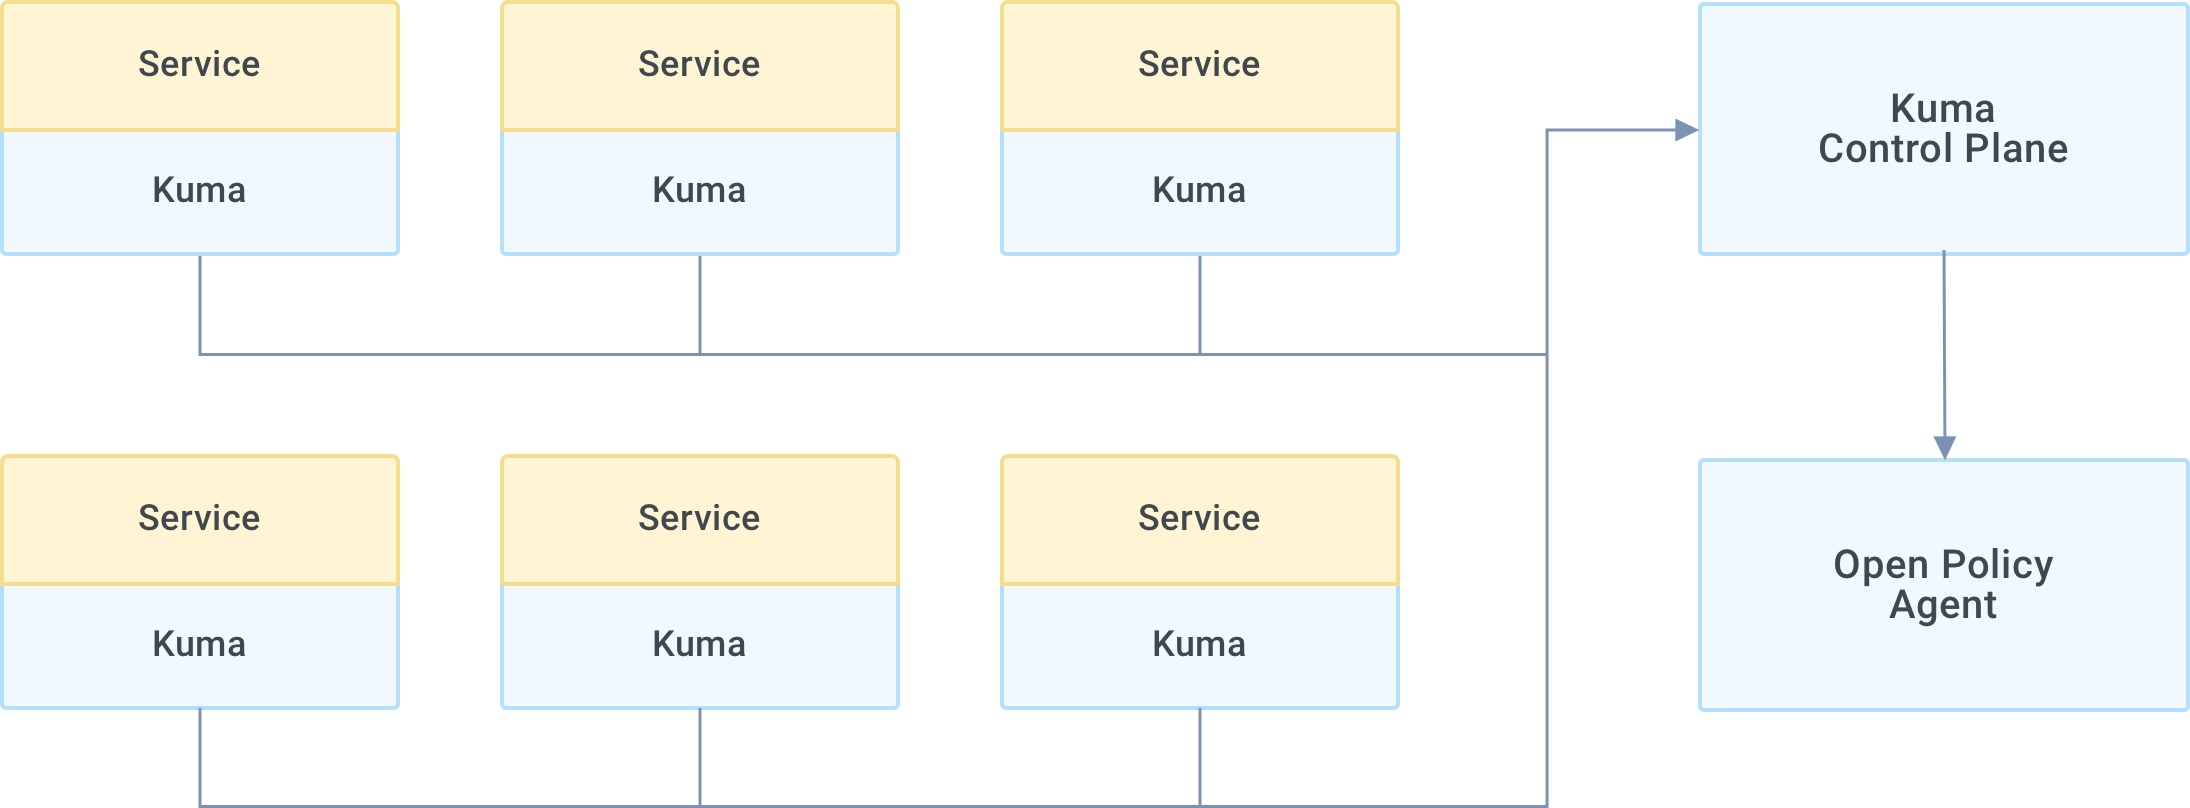 MS3 Tavros Zero-Trust Security with Kuma Service Mesh and Open Policy Agent (OPA)